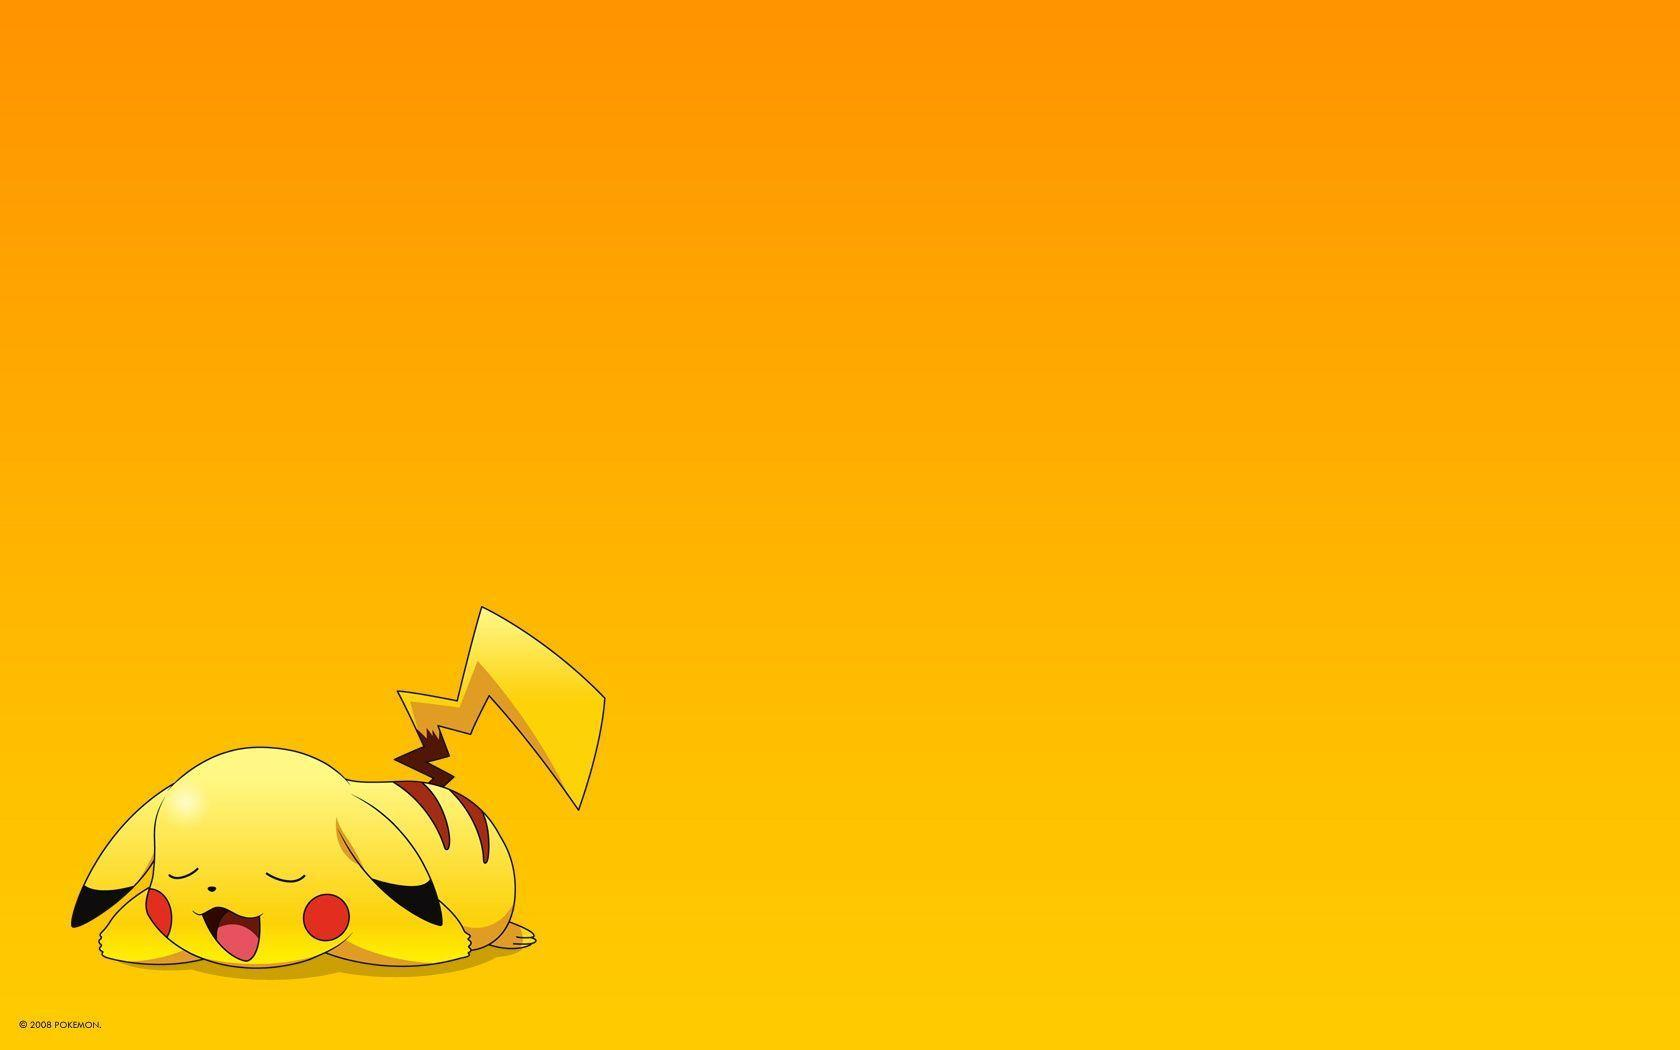 Wallpapers For > Original Pokemon Wallpapers For Computer